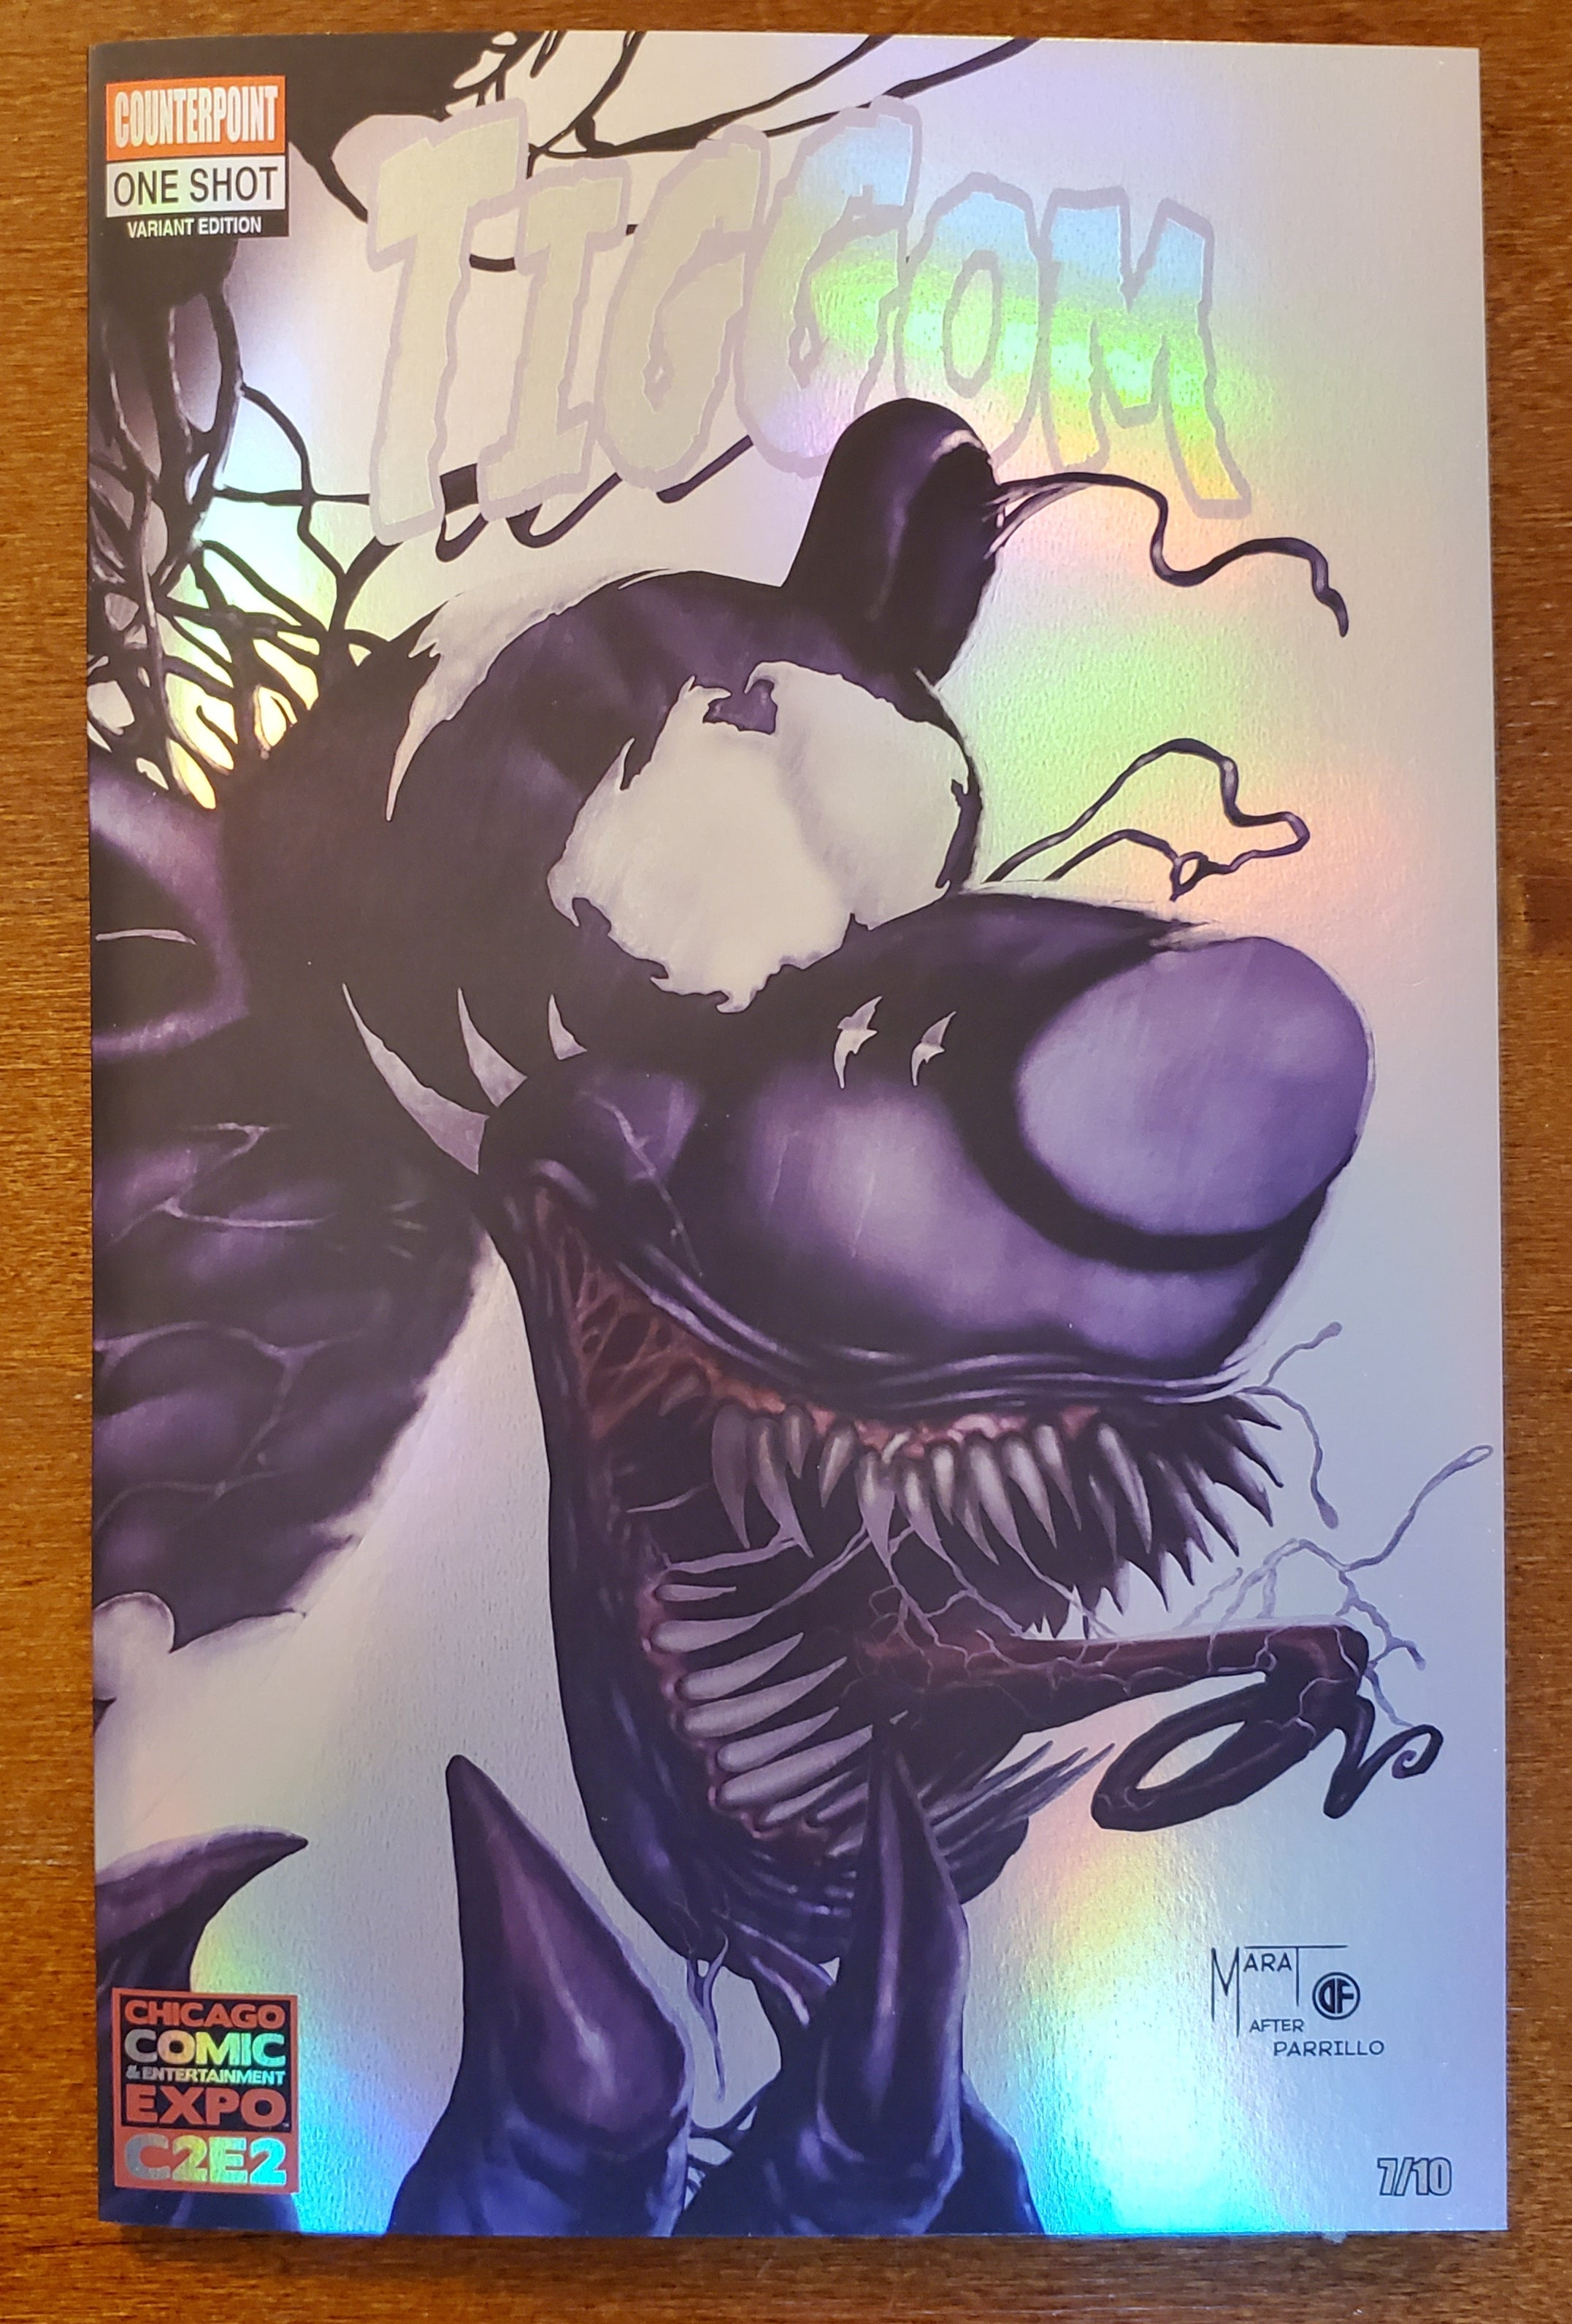 Tiggom (Do You Pooh) One Shot CHROME Venom Parrillo Homage C2E2 Convention Exclusive Variant (Limited to 10)